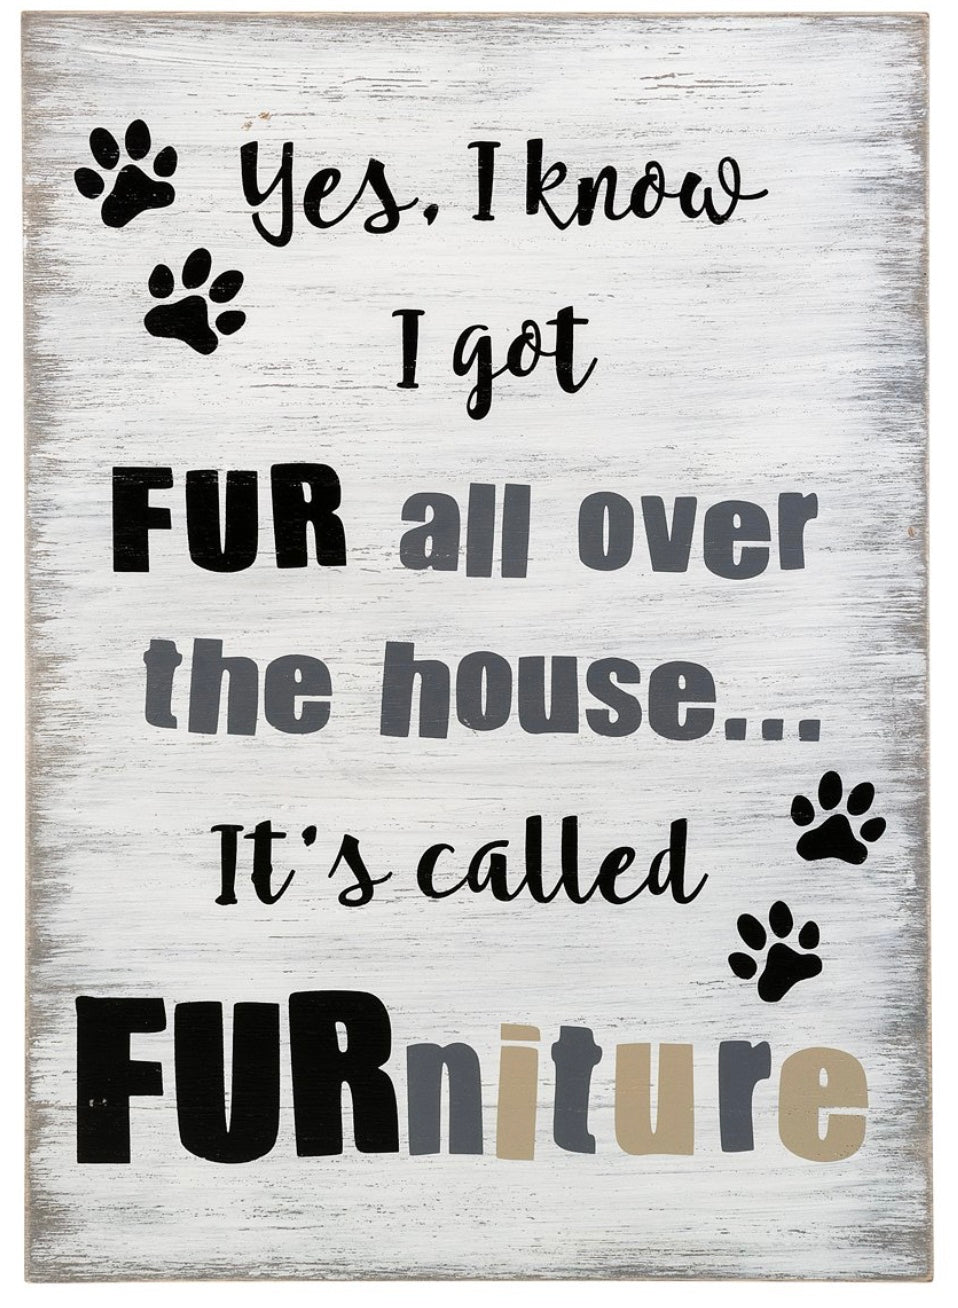 'Yes, I Know I Got Fur All over the House' Wall Sign - White Wash